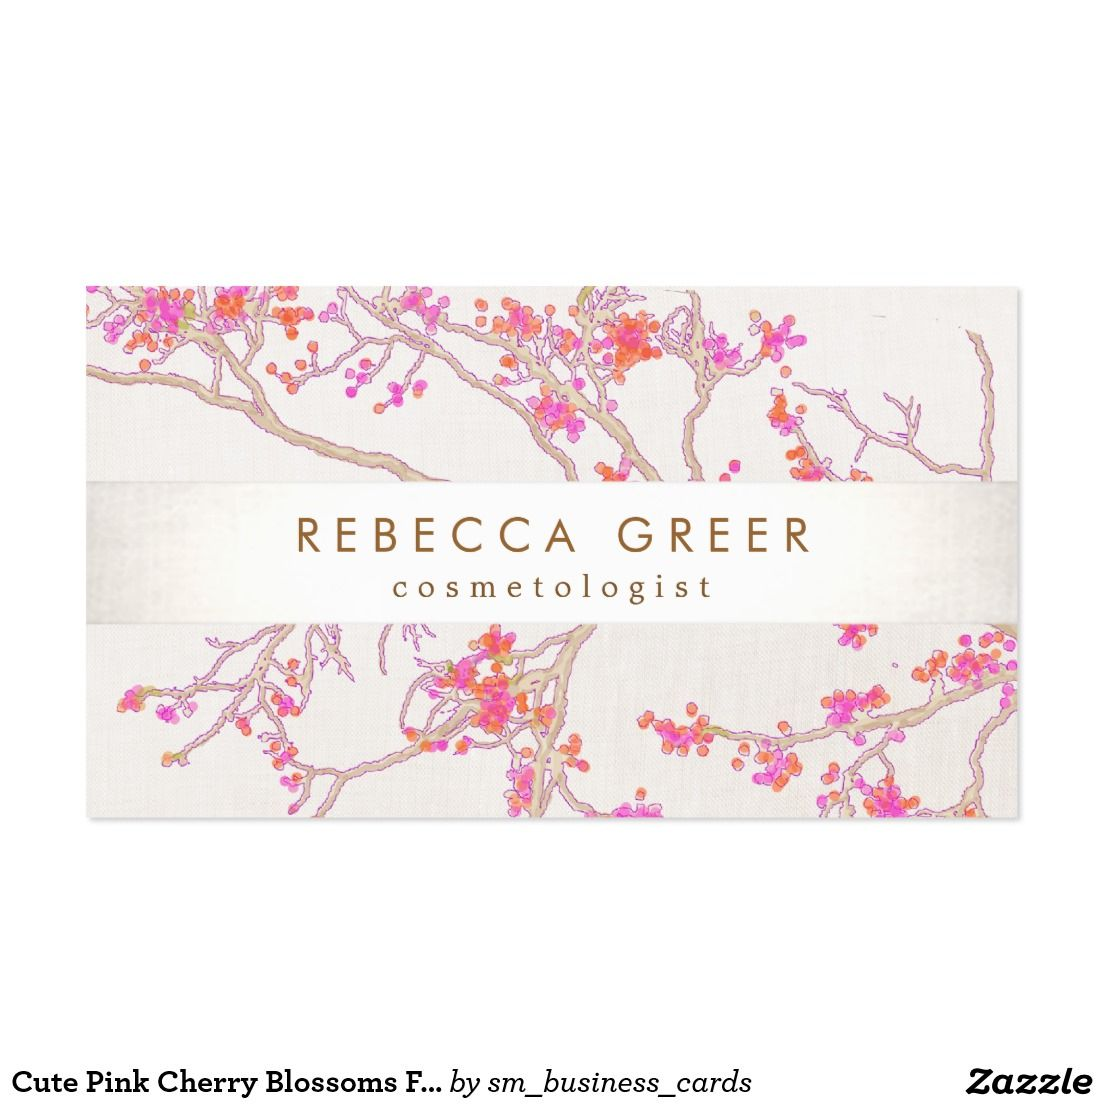 Cute pink cherry blossoms floral beauty business card perfect for cute pink cherry blossoms floral beauty business card perfect for day spas manicurists reheart Choice Image